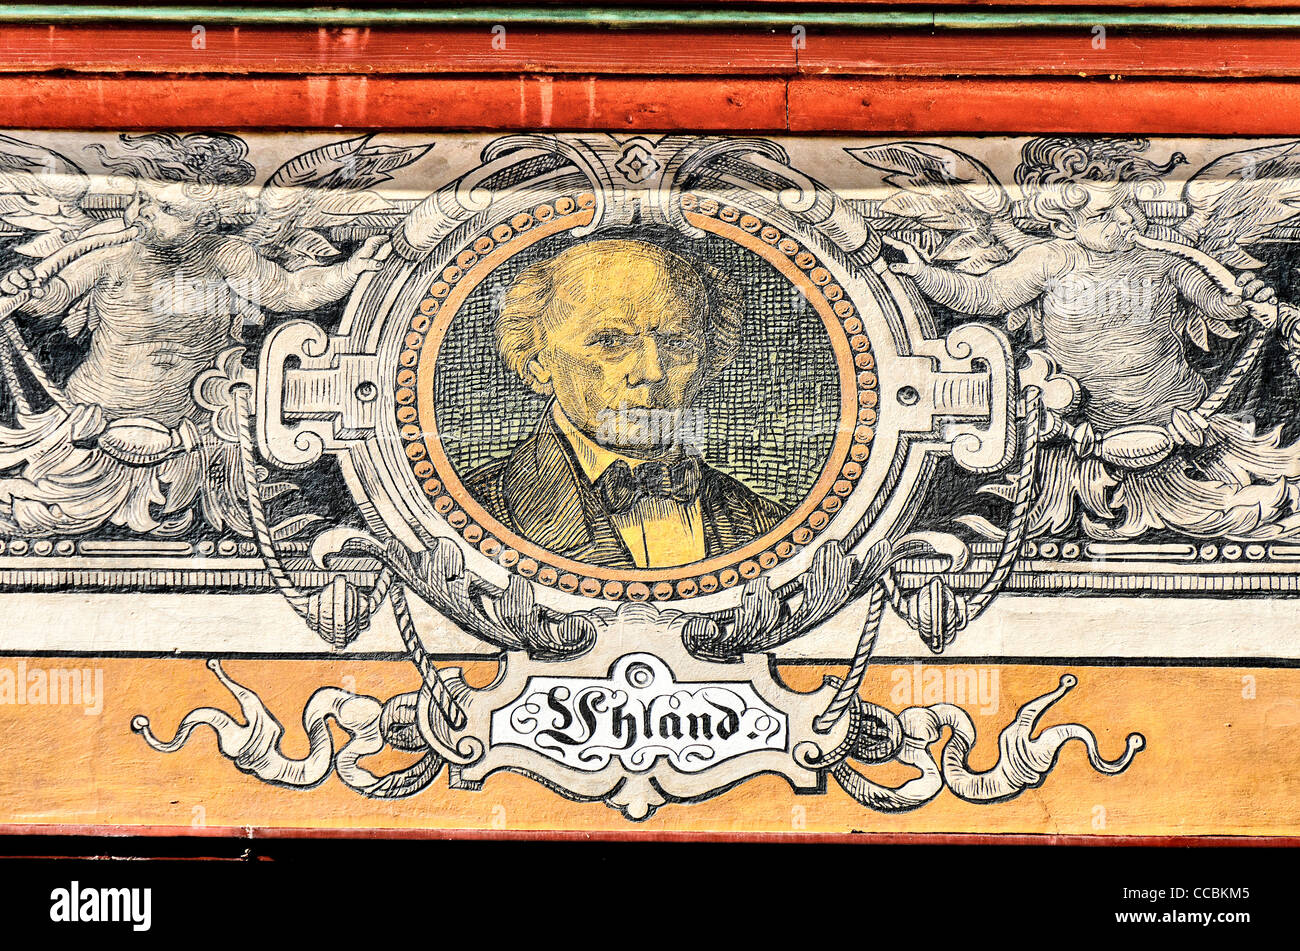 Painted portrait of Ludwig Uhland on facade of the town hall of Tübingen, 'Portraet Fassade Tuebinger Rathaus' - Stock Image